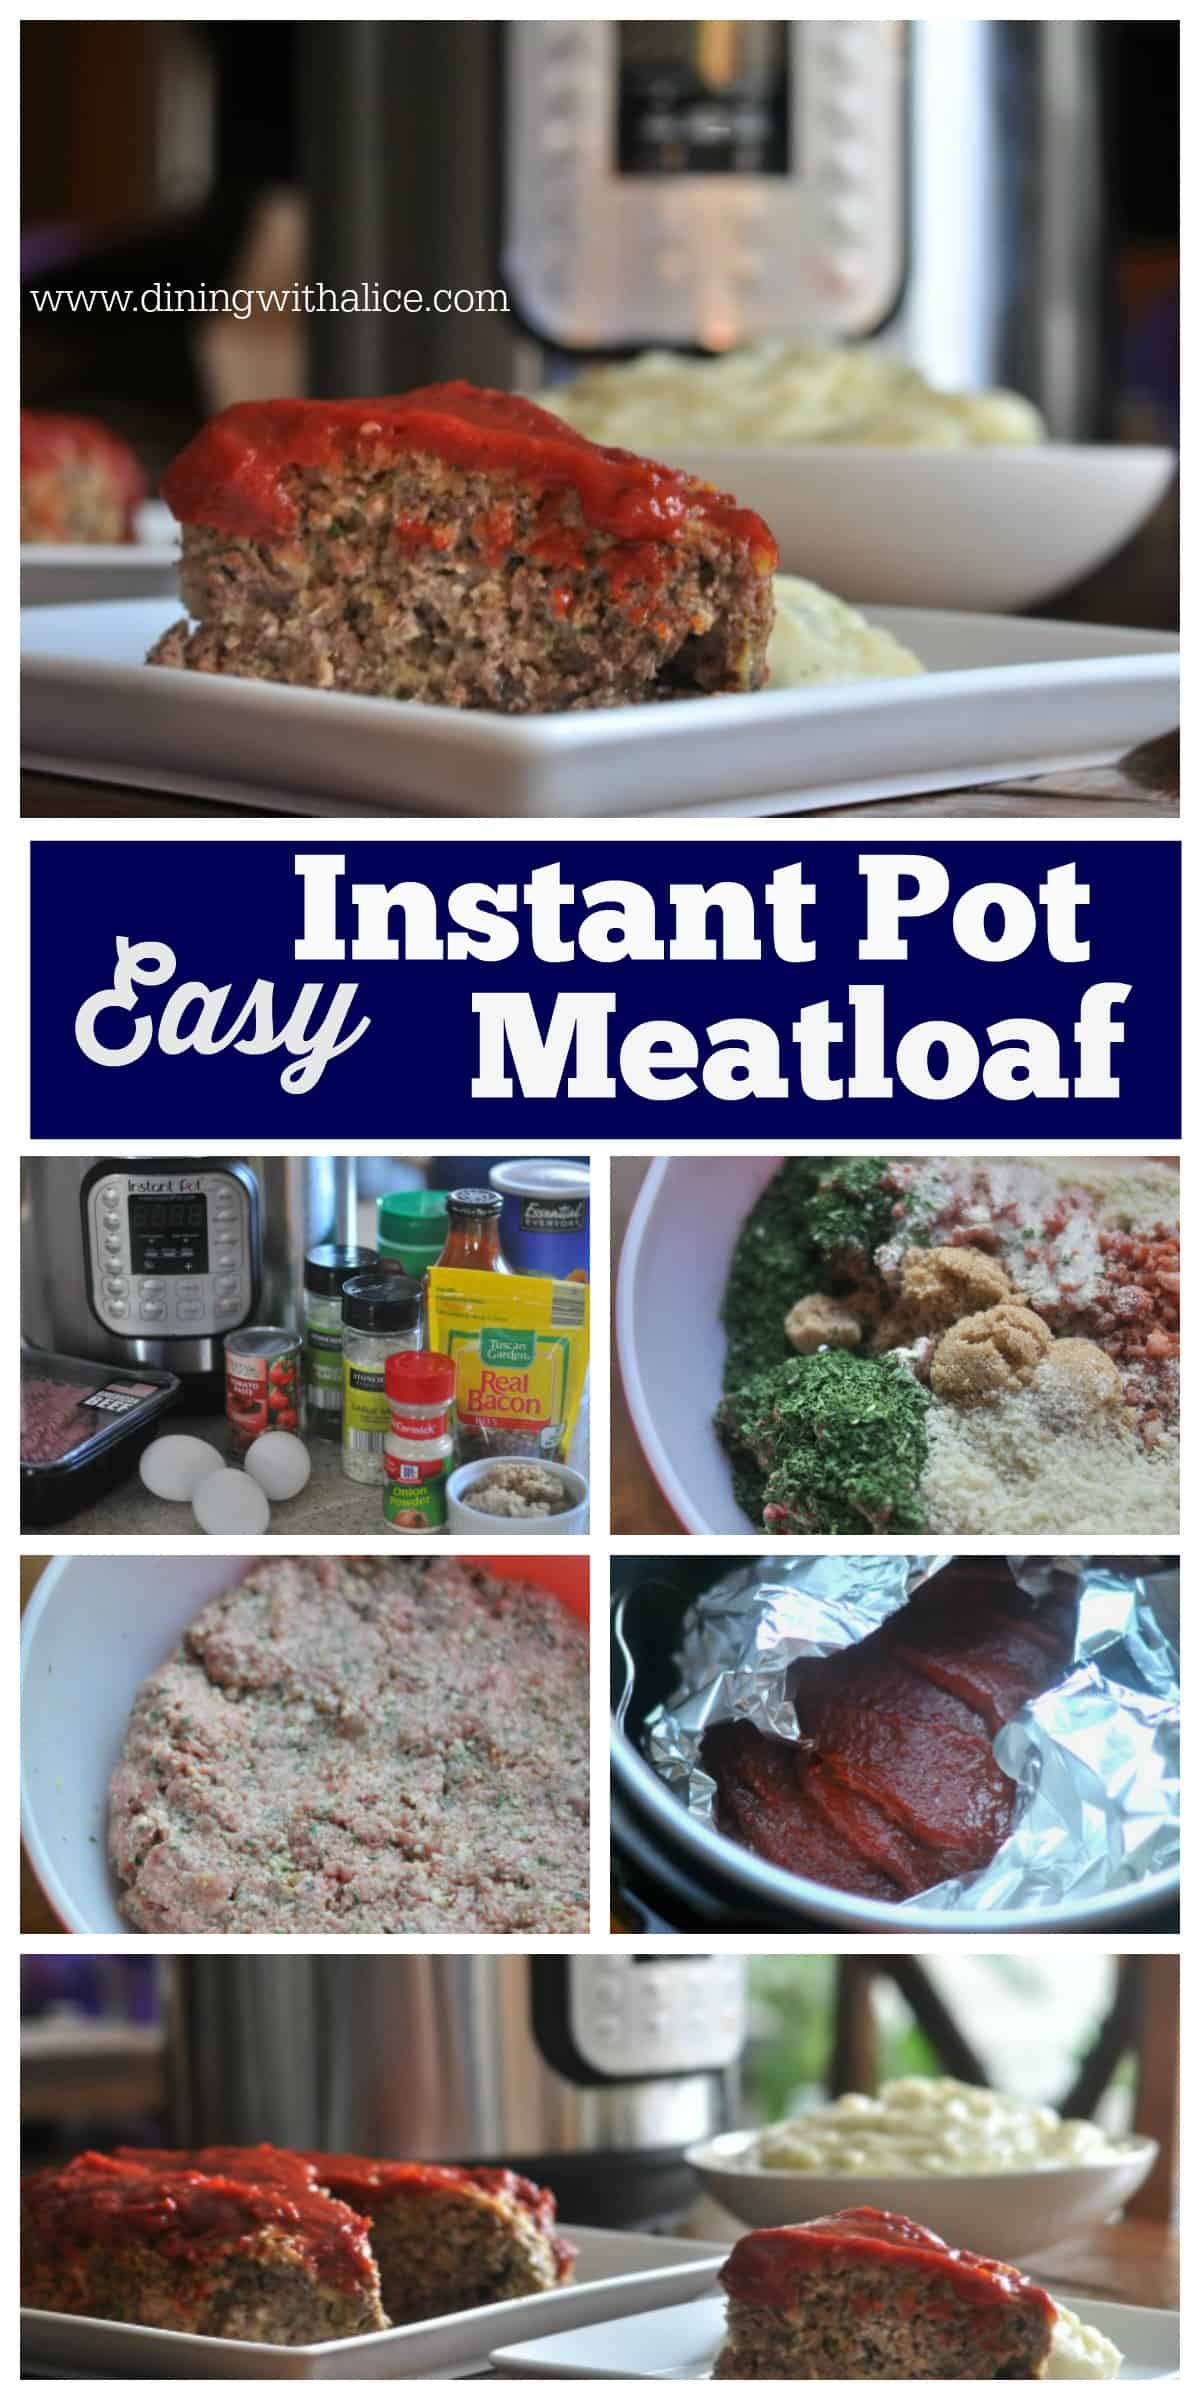 Instant Pot Meatloaf Easy Recipe with Steps